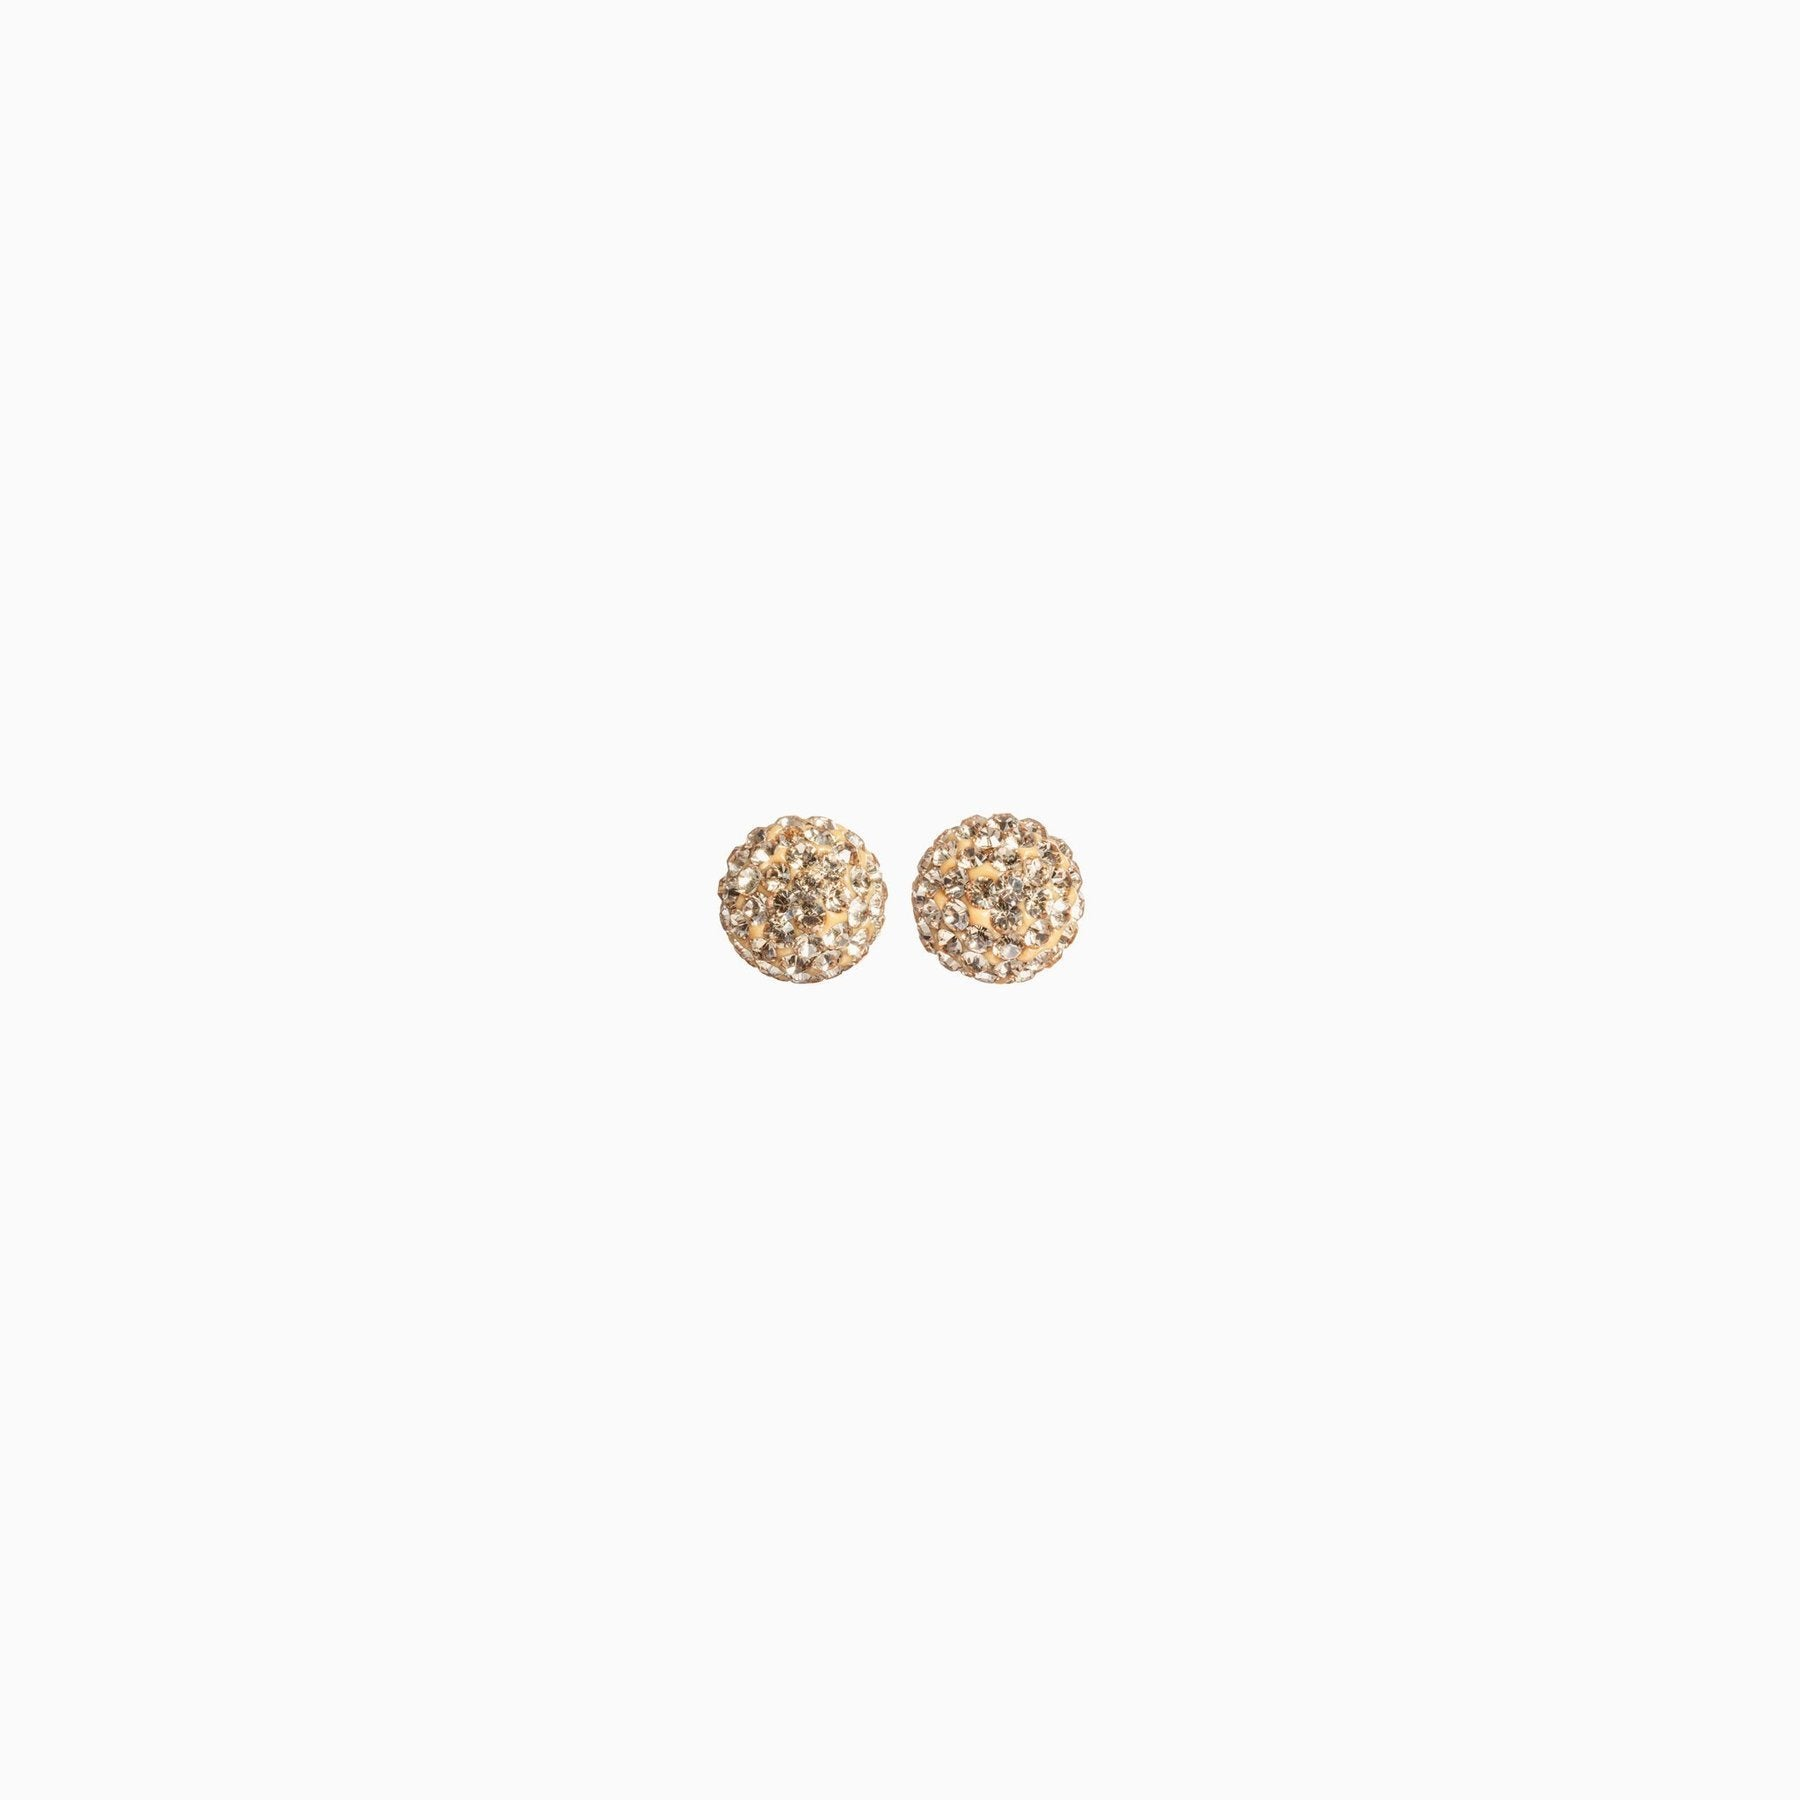 H&B Sparkle Ball™ Stud Earrings - 6mm Gold